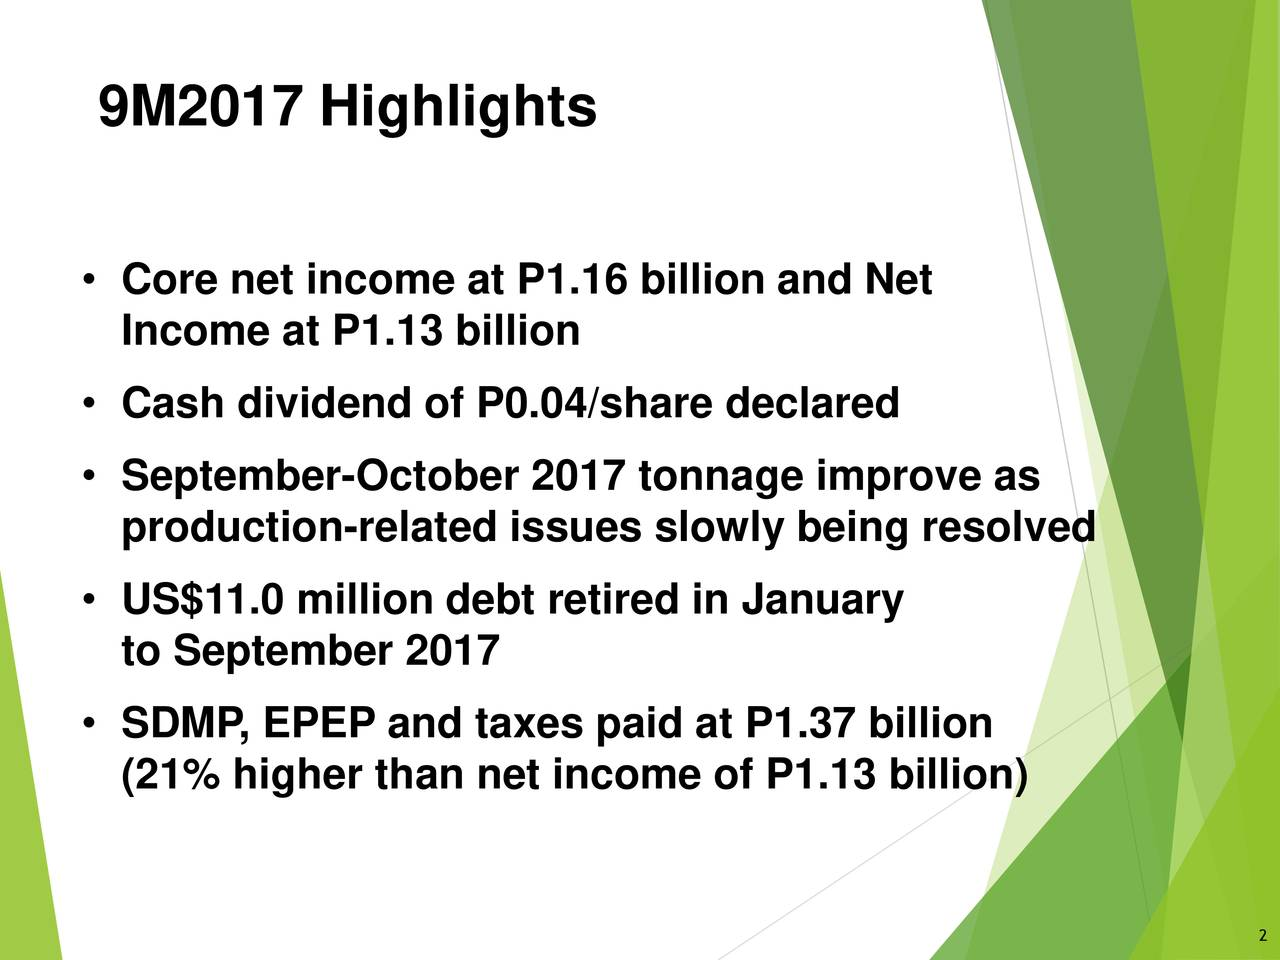 • Core net income at P1.16 billion and Net Income at P1.13 billion • Cash dividend of P0.04/share declared • September-October 2017 tonnage improve as production-related issues slowly being resolved • US$11.0 million debt retired in January to September 2017 • SDMP , EPEP and taxes paid at P1.37 billion (21% higher than net income of P1.13 billion)